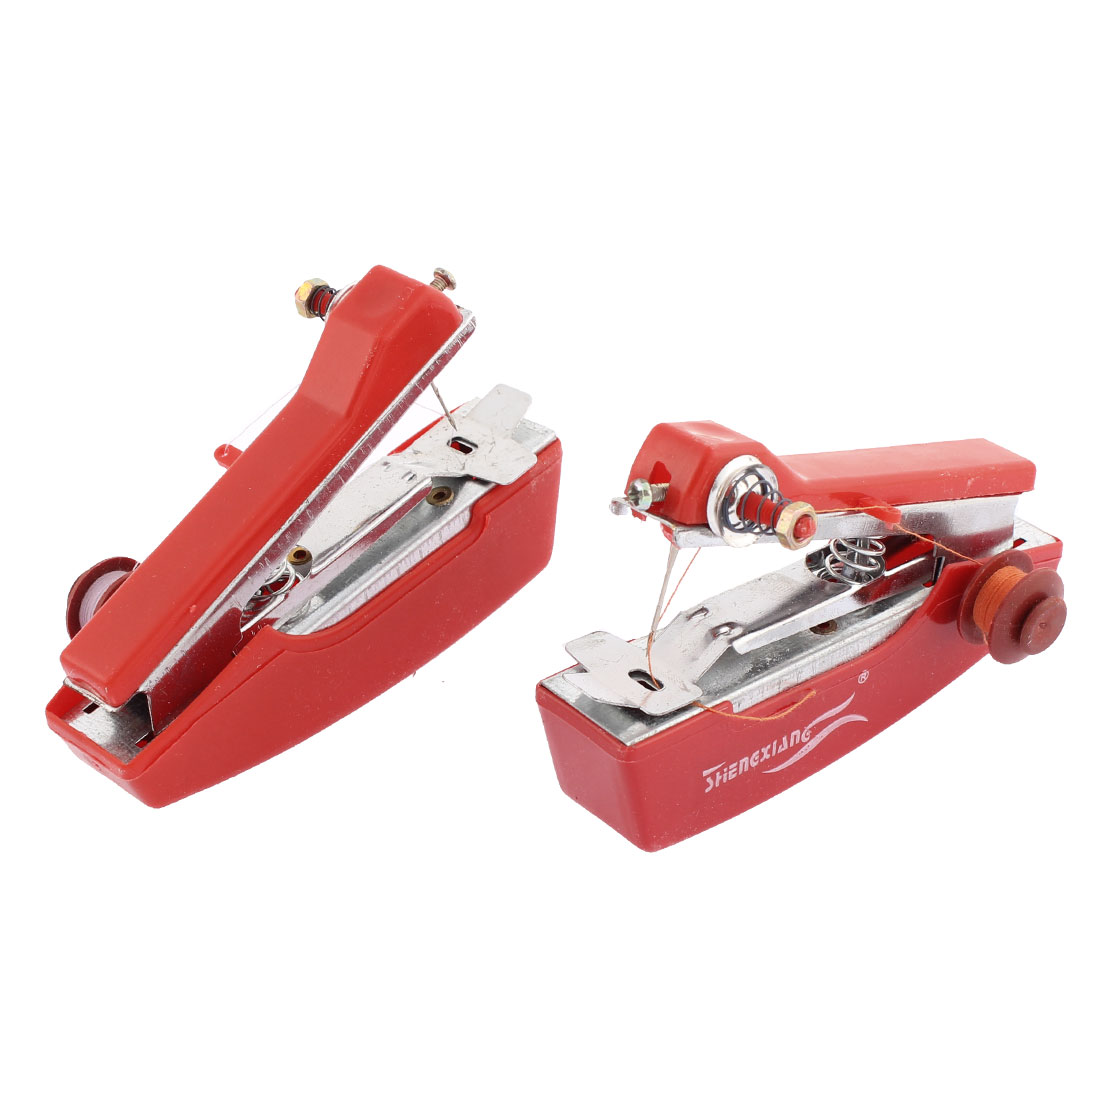 Home Clothes Fabric Craft Handheld Mini Sewing Machine Stitch Tool Red 2pcs